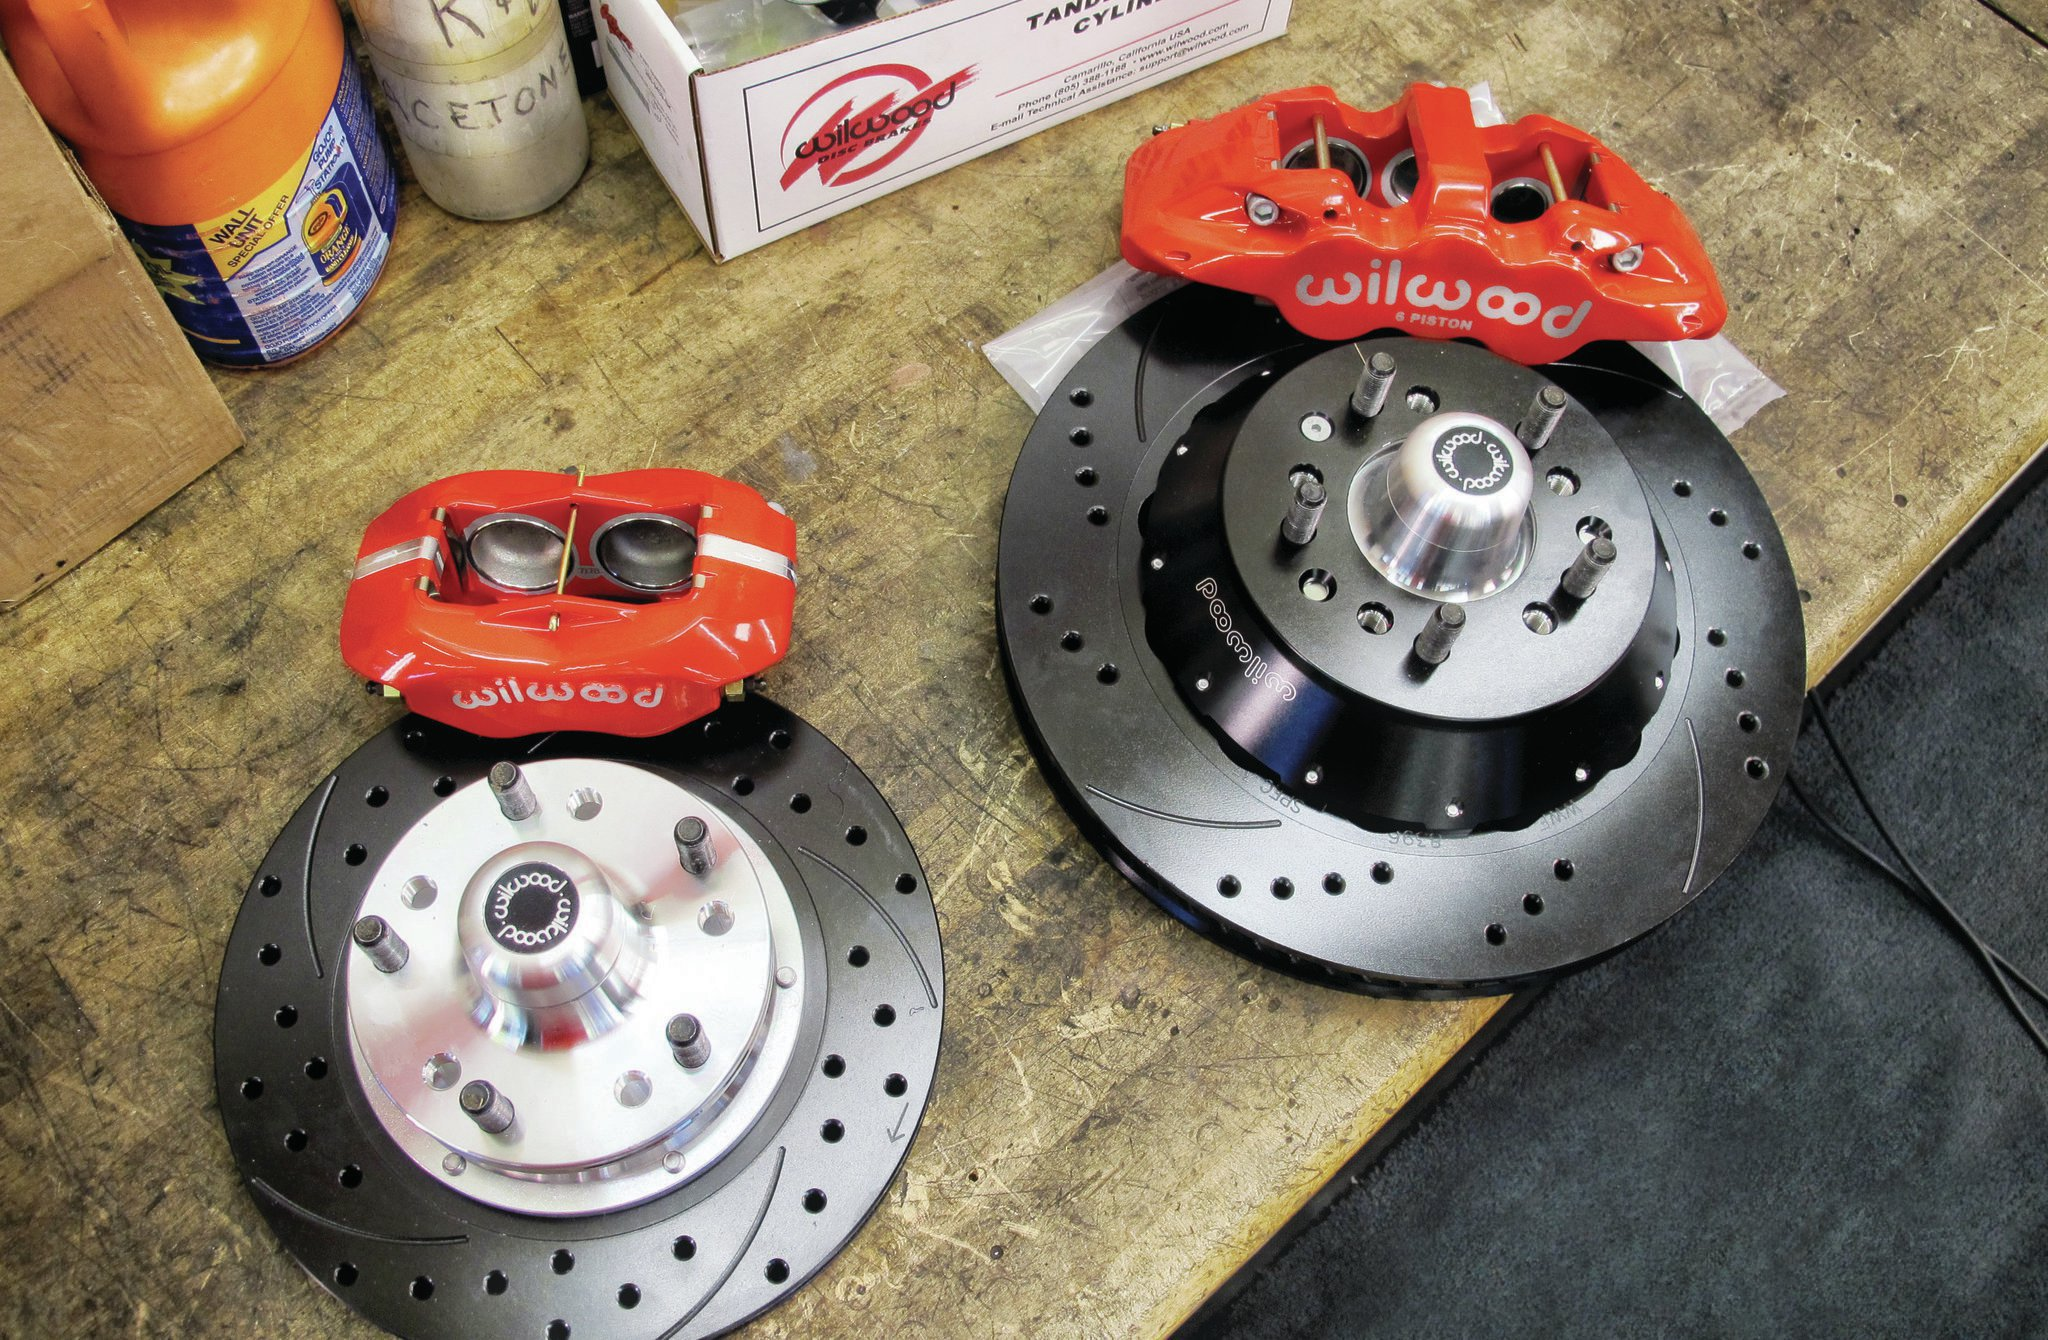 Not only did we test a set of 11-inch Wilwood Dynalite Pro front discs (PN 140-10996-dr) and 12-inch Dynapro Series rear discs (PN 140-11398-dr) on the Elco but we left Wilwood's Aero6 Big Brake 14-inch front kit (PN 140-10920-DR) and the Aero4 Big Brake 14-inch rear kit (PN 140-10948-DR) with internal parking-brake mechanism on the car because it worked too well to give the parts back. The Aero6 calipers contain six pistons, while the Aero4 calipers contain four pistons.